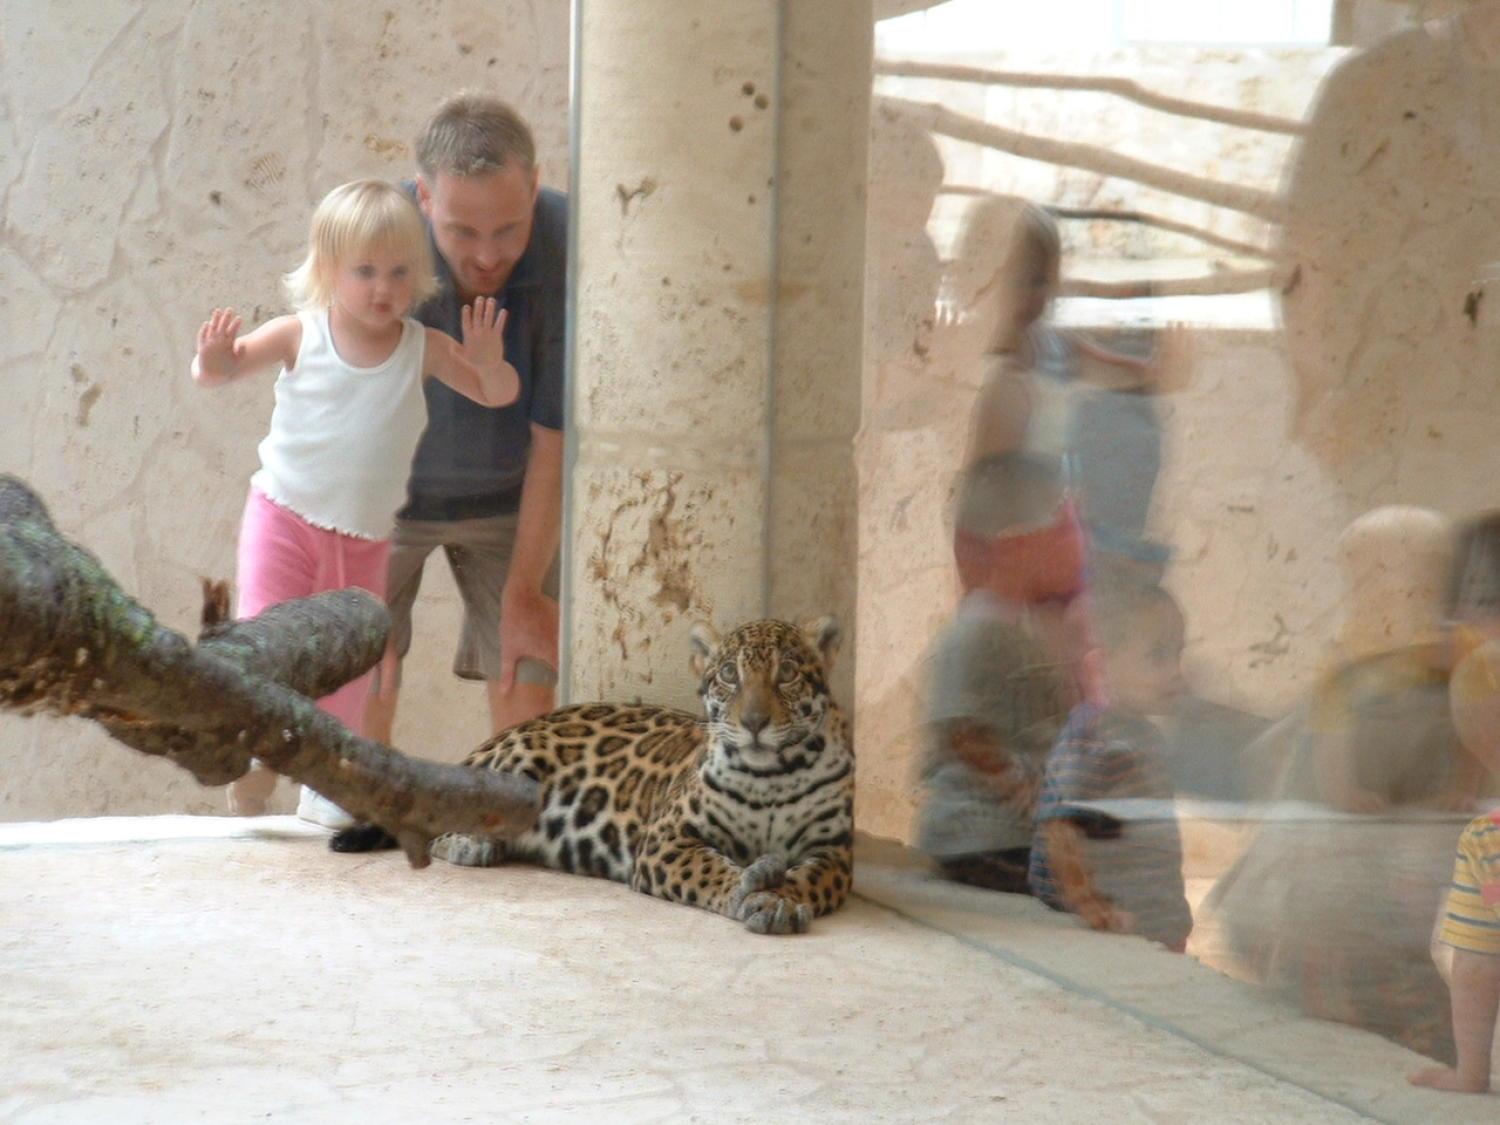 [Jaguar looks at the photographer while tourists look on]                                                                                                      [Sequence #]: 1 of 1